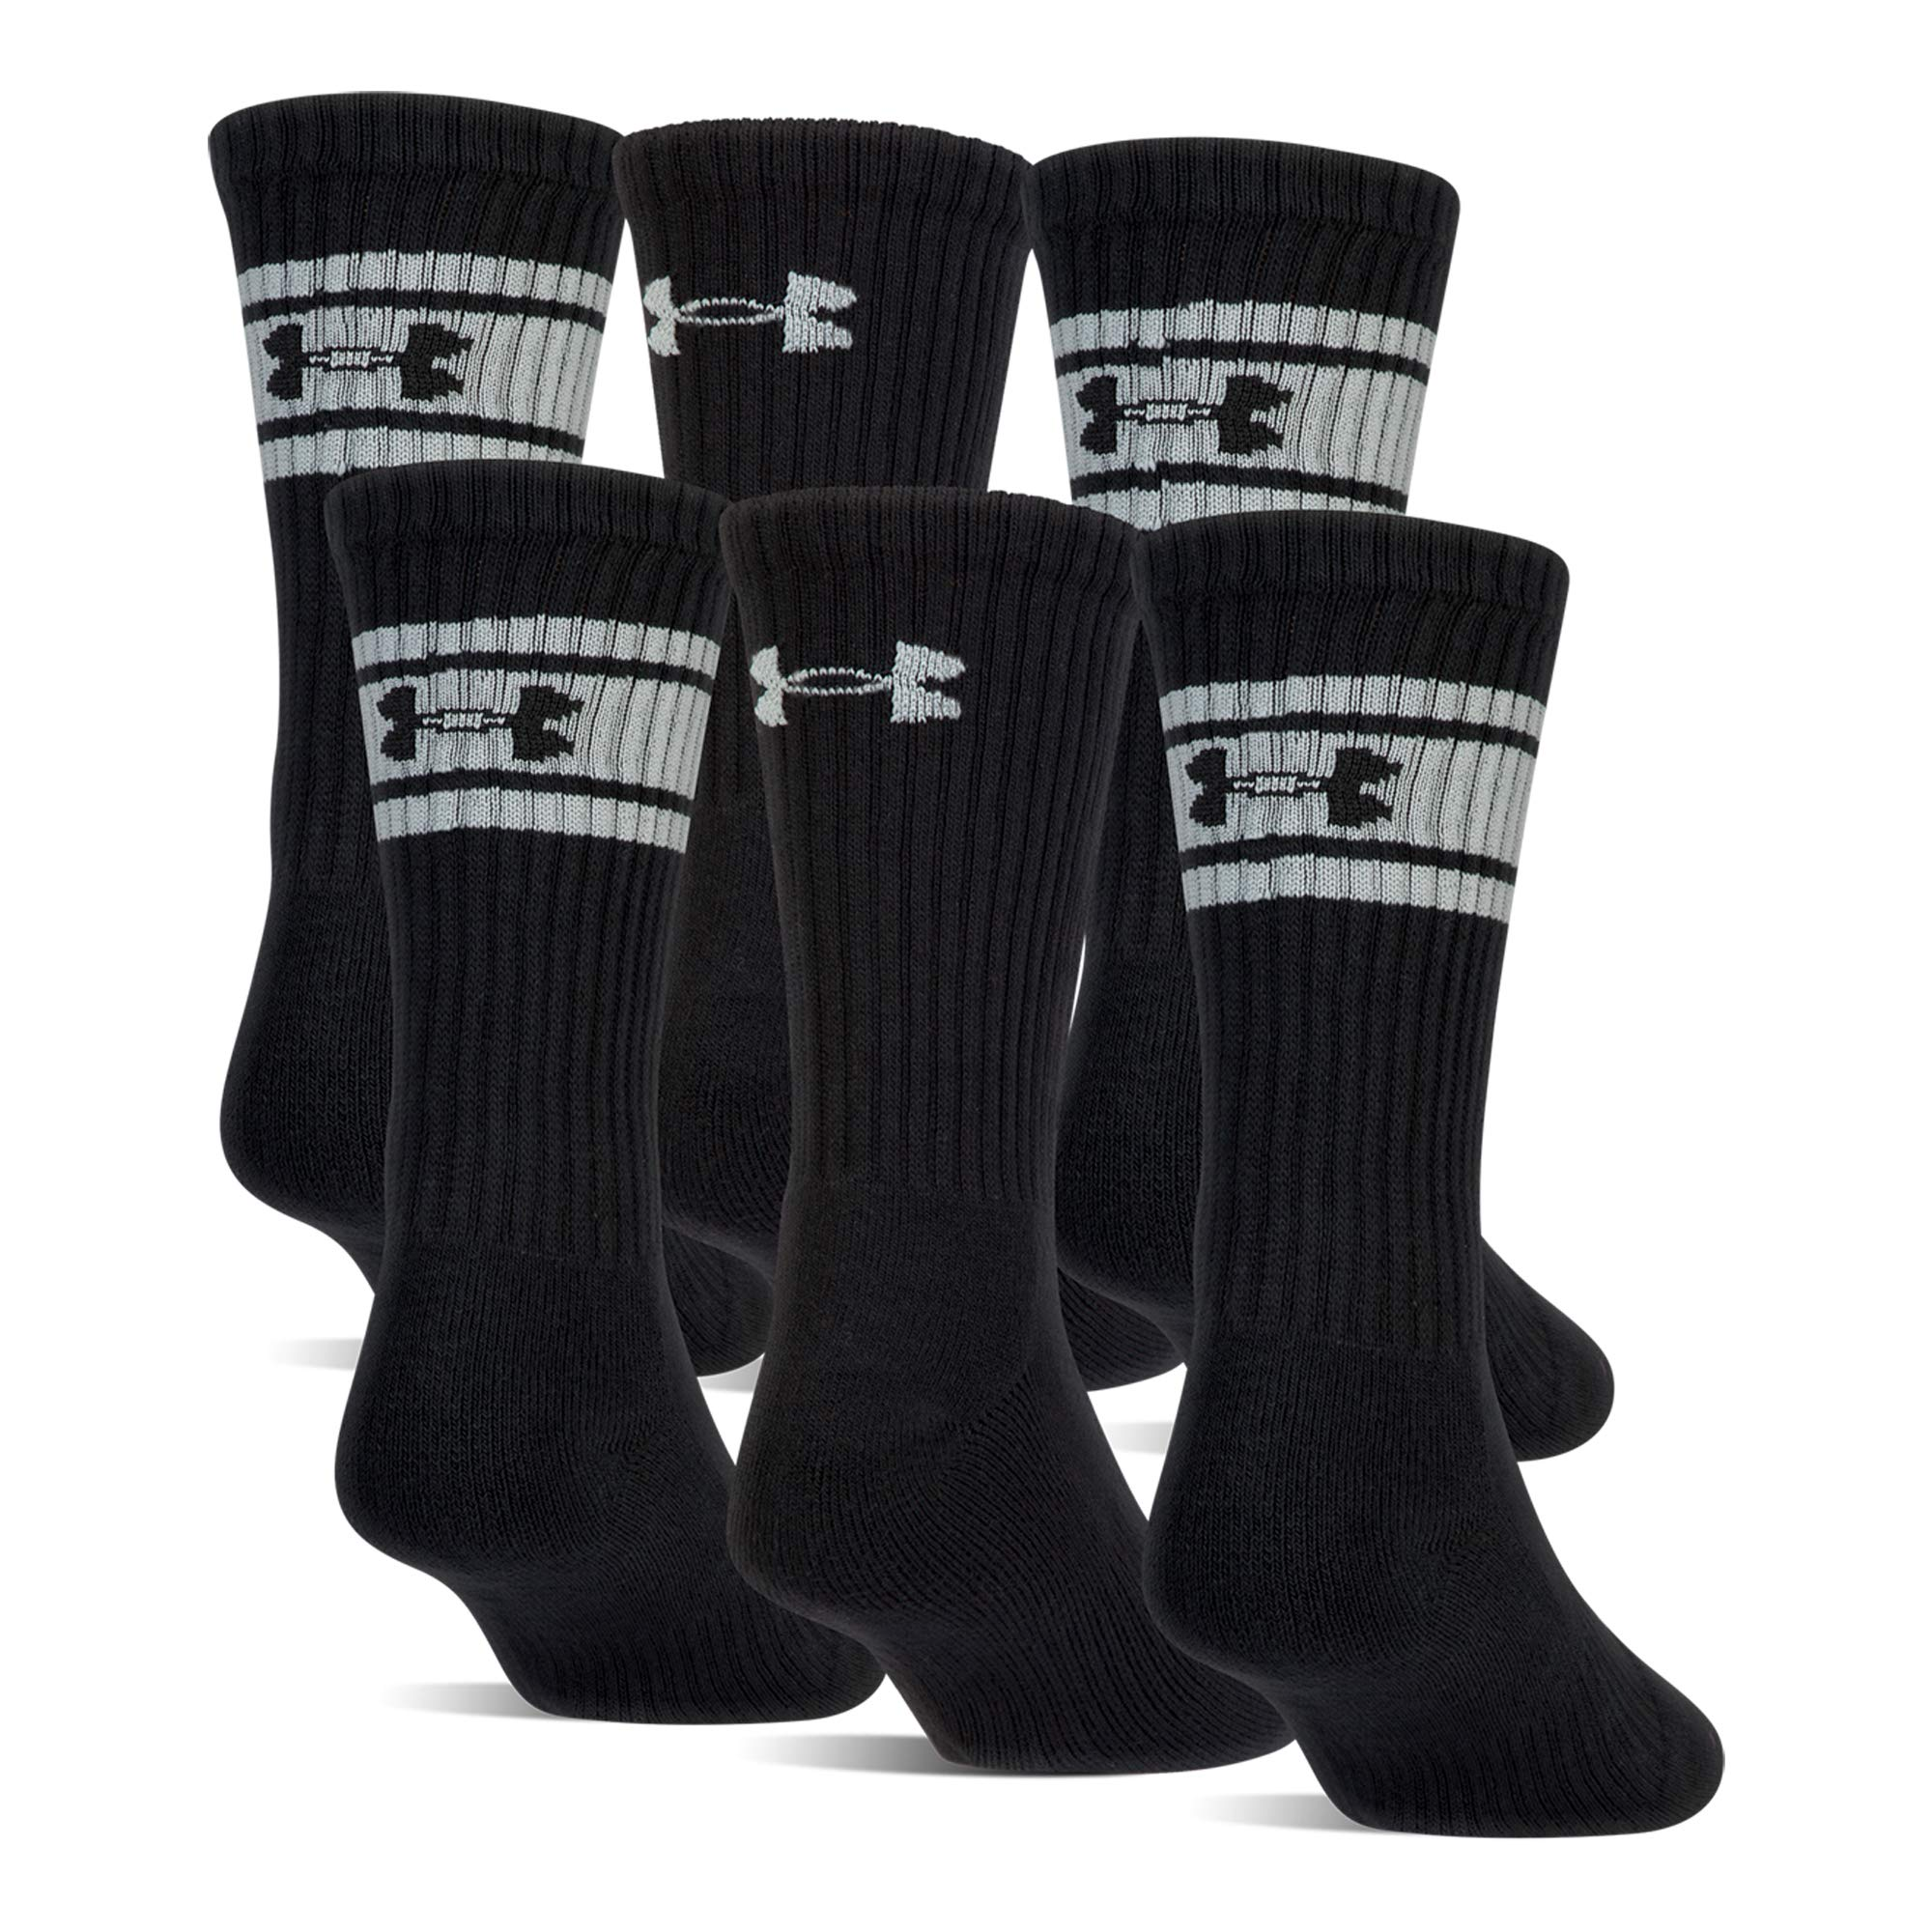 Under Armour Boy's Charged Cotton 2.0 Crew 6 Pack, Black/Gray, Youth Medium by Under Armour